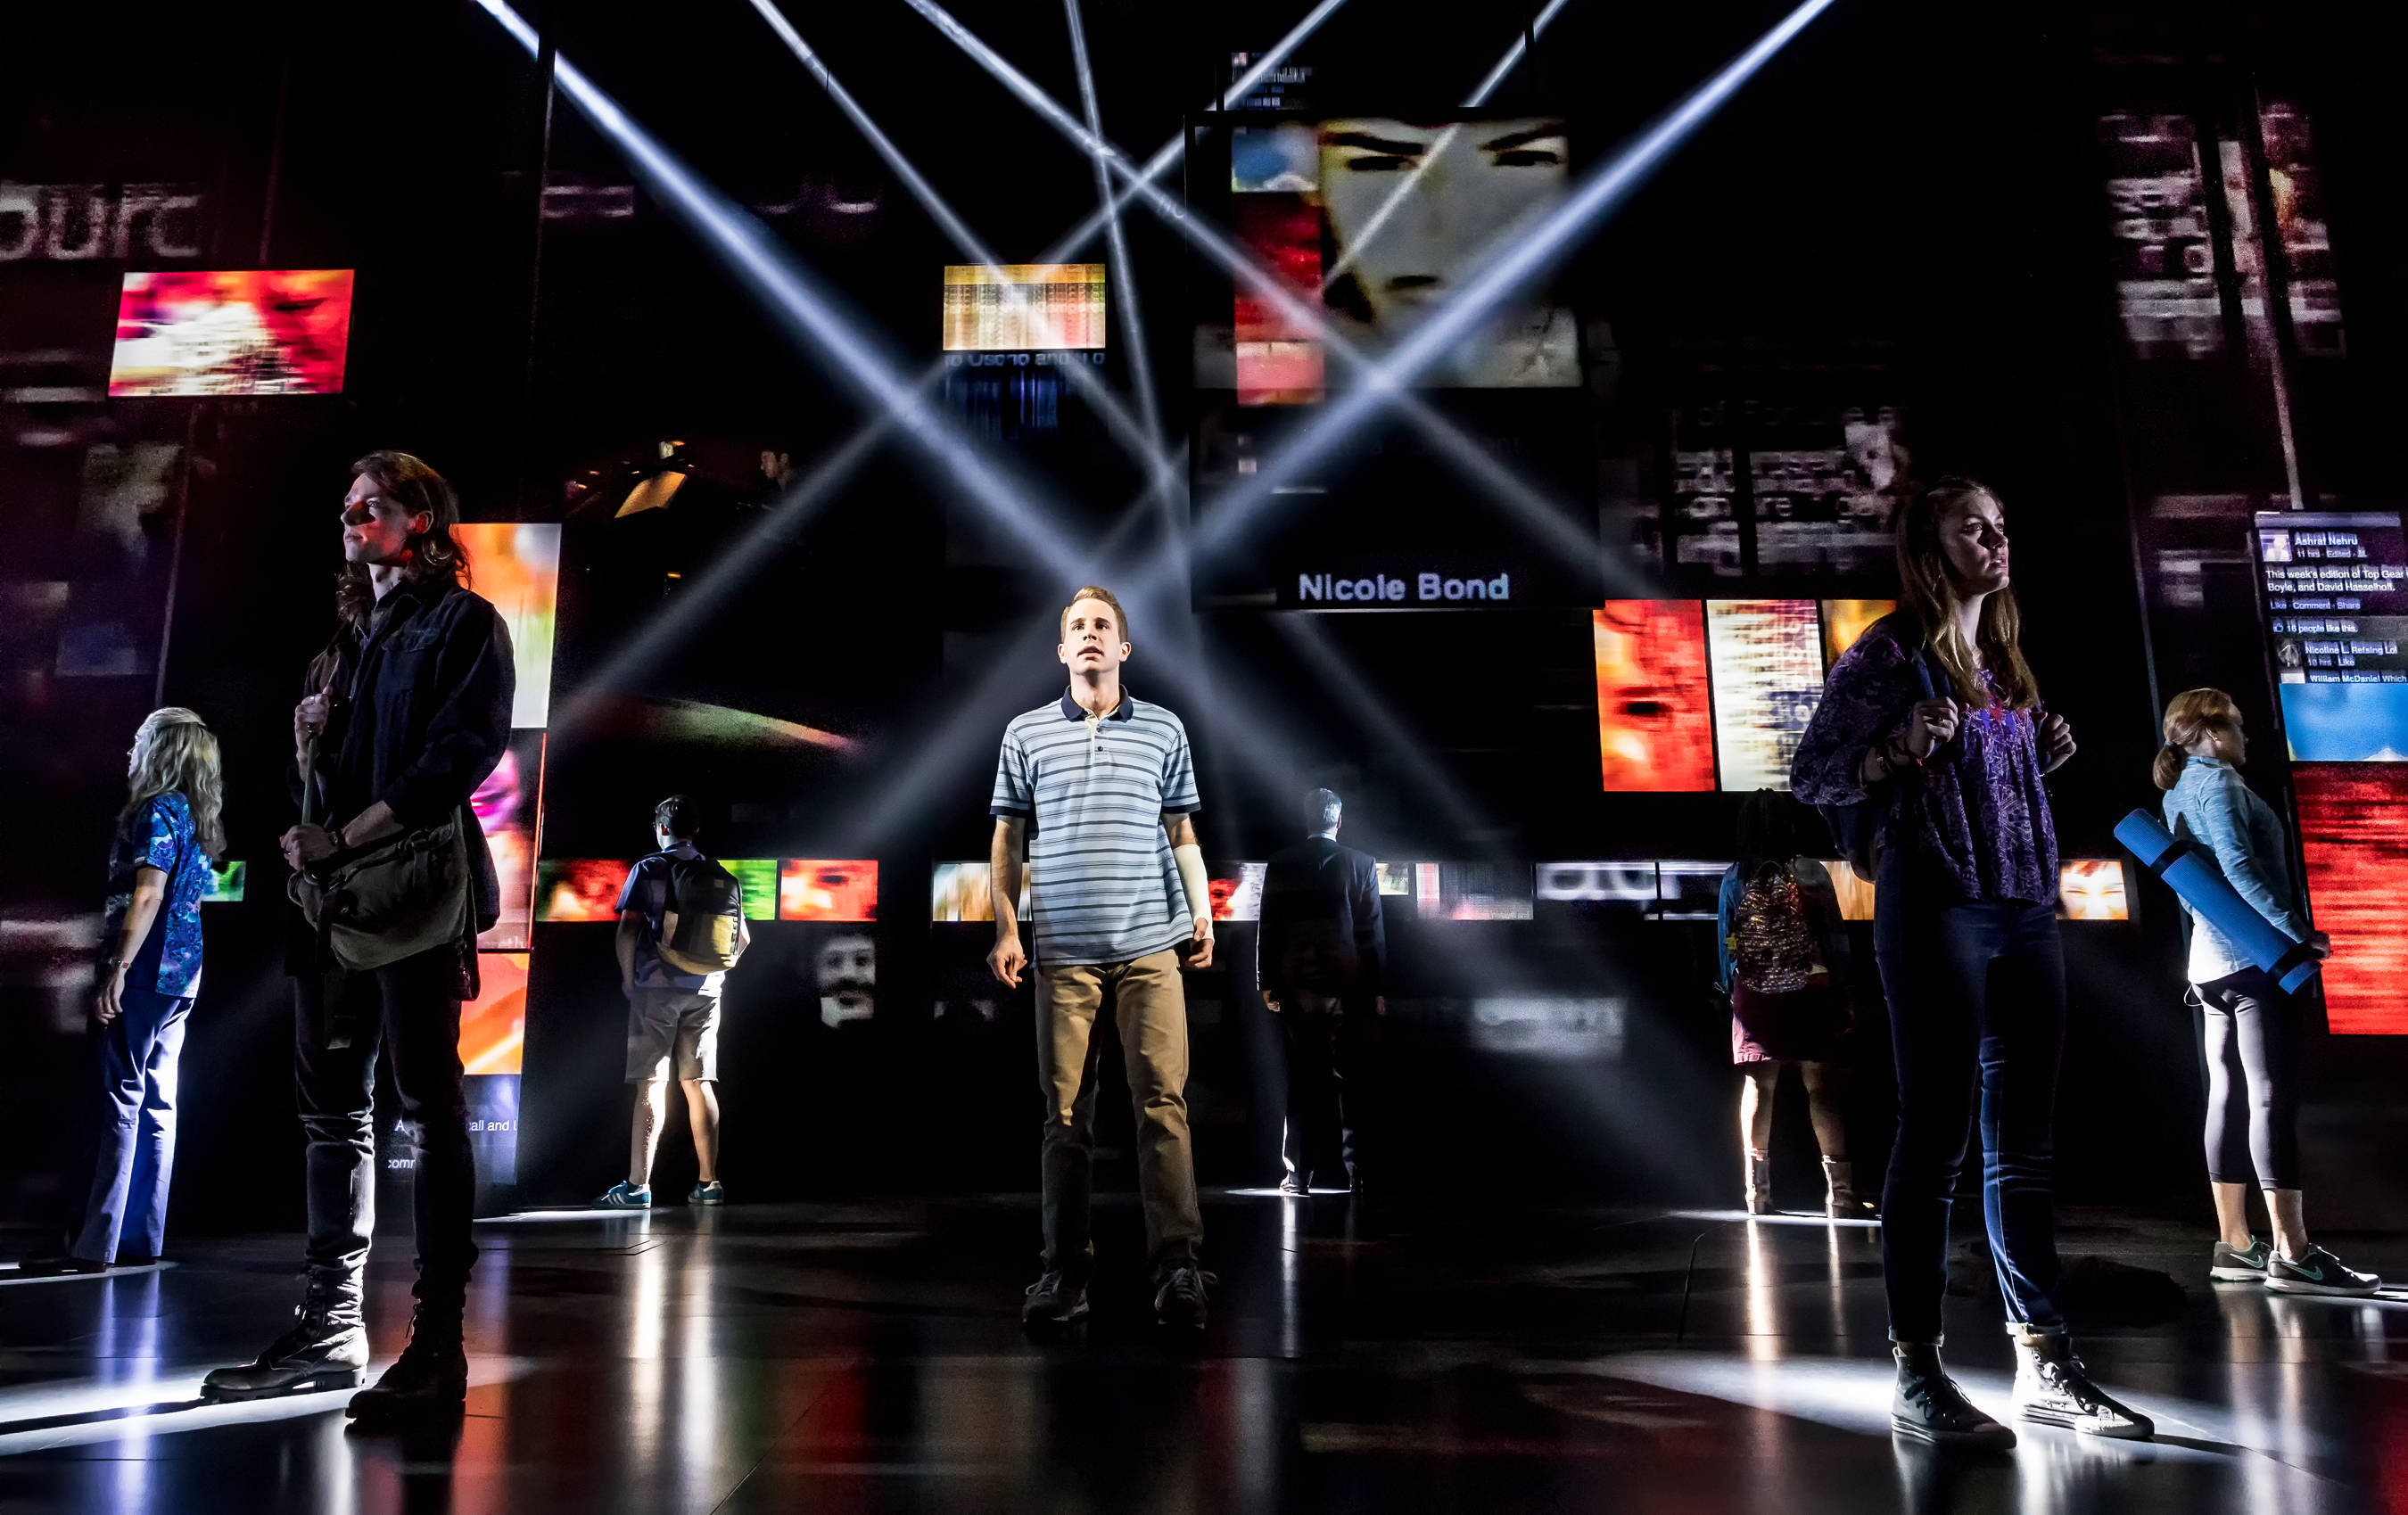 e7ace84aed7d3d8e84e1_Dear-Evan-Hansen-4250-Photo-Credit-Matthew-Murphy.jpg